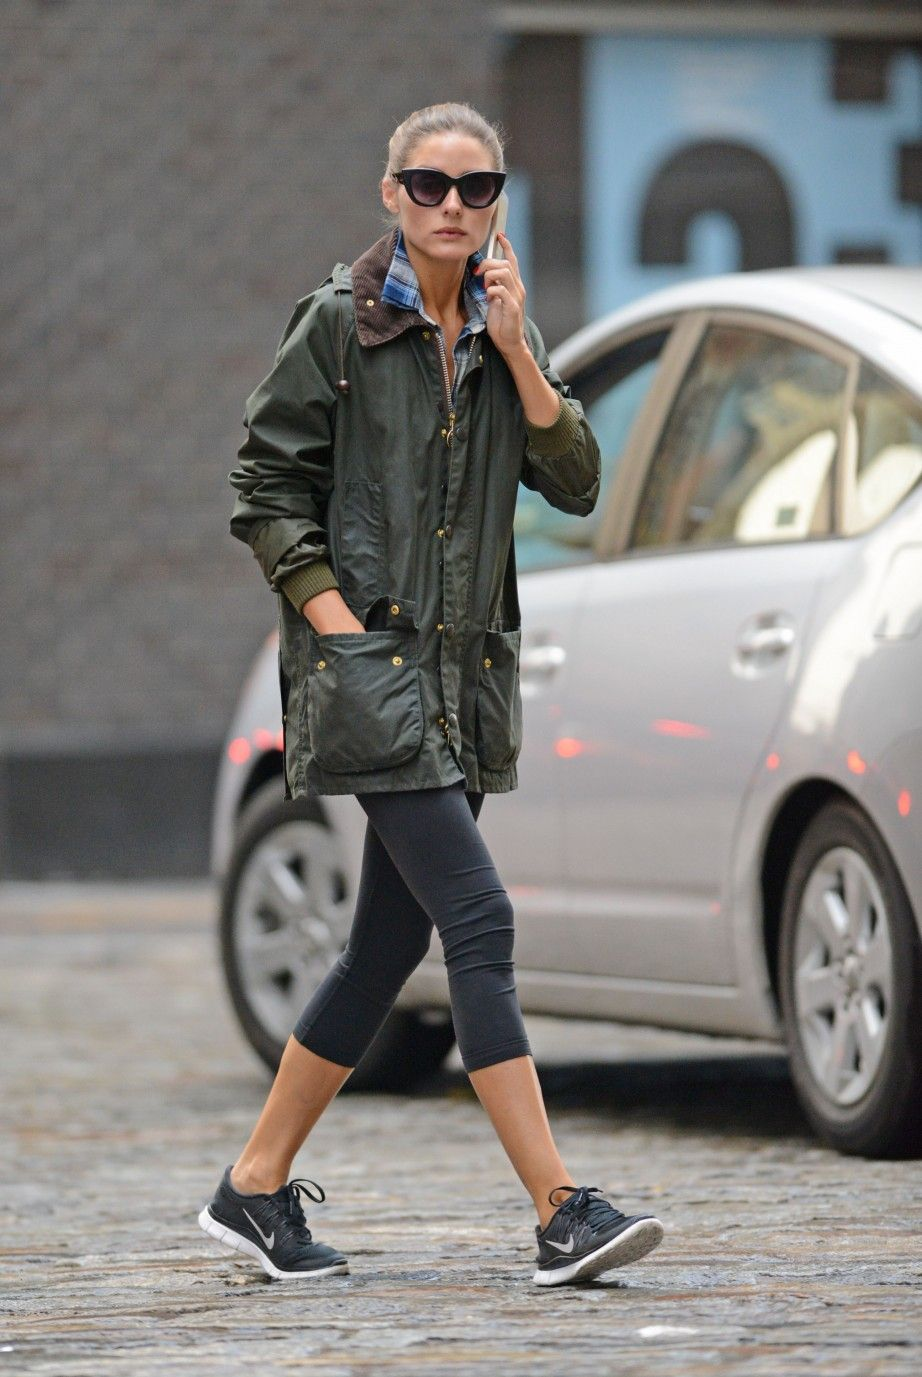 Olivia Palermo: Sporty στη Νέα Υόρκη | Jenny.gr Galleries